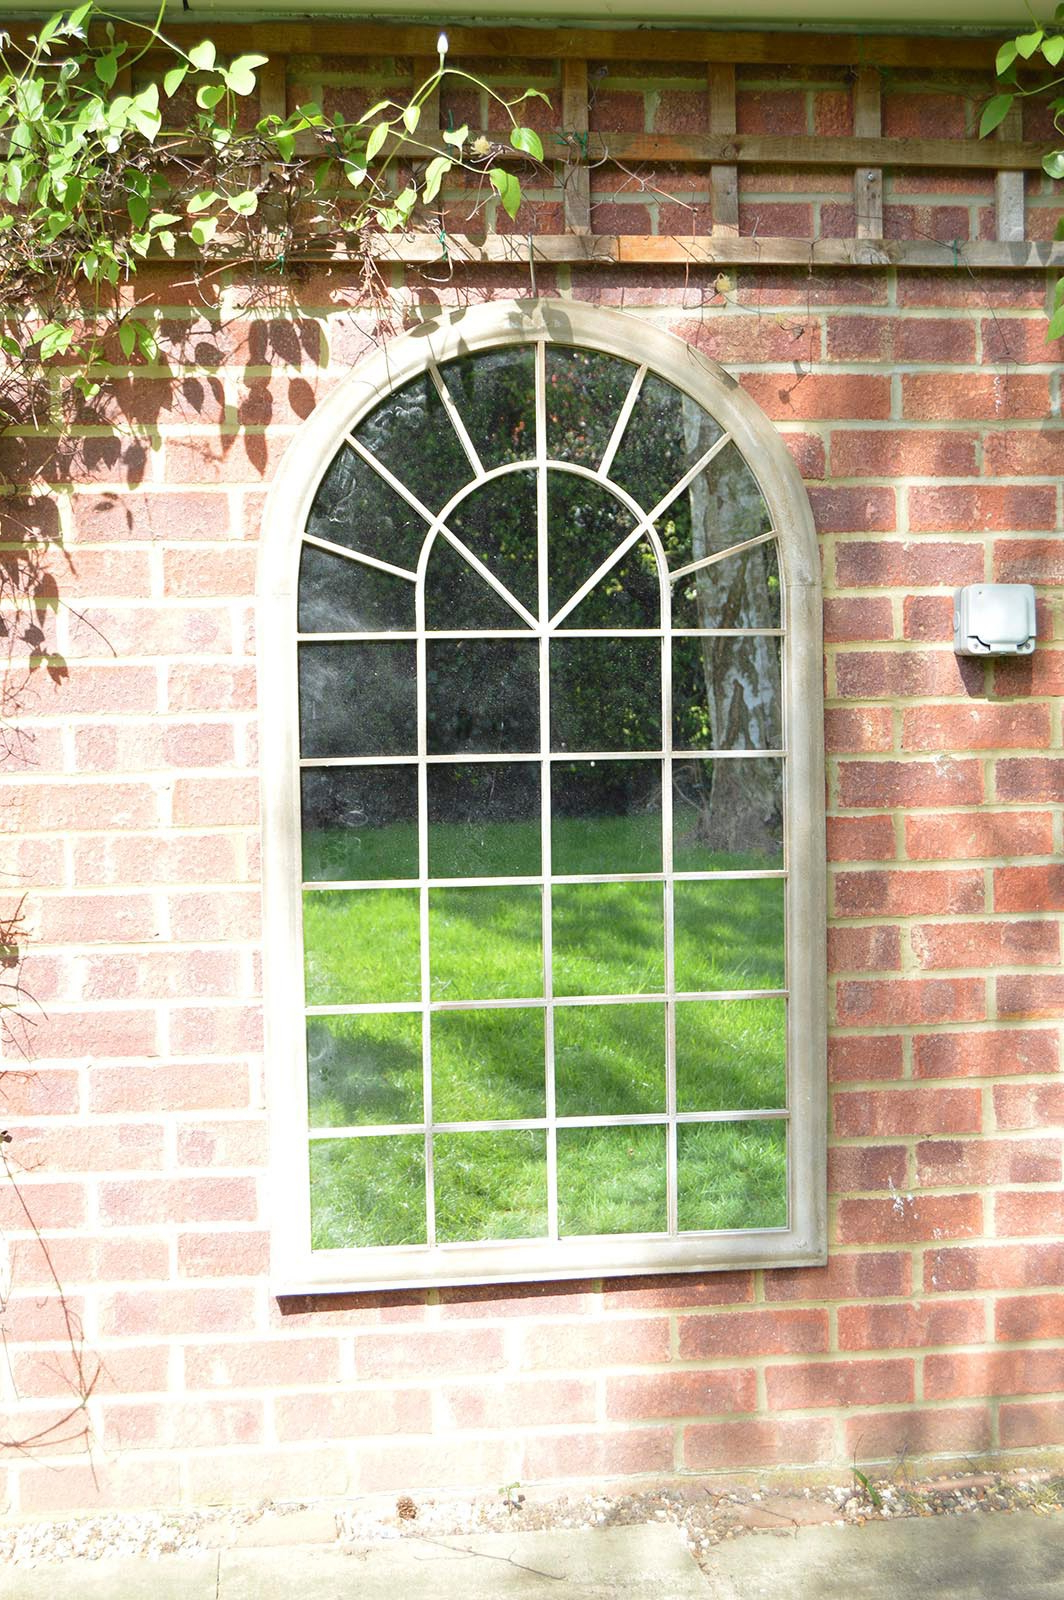 Metal Arch Window Wall Mirrors Pertaining To Well Liked Details About Large Wall Mirror Rustic French Style Arched Window Garden  Outdoor 4ft3 X 2ft (View 17 of 20)